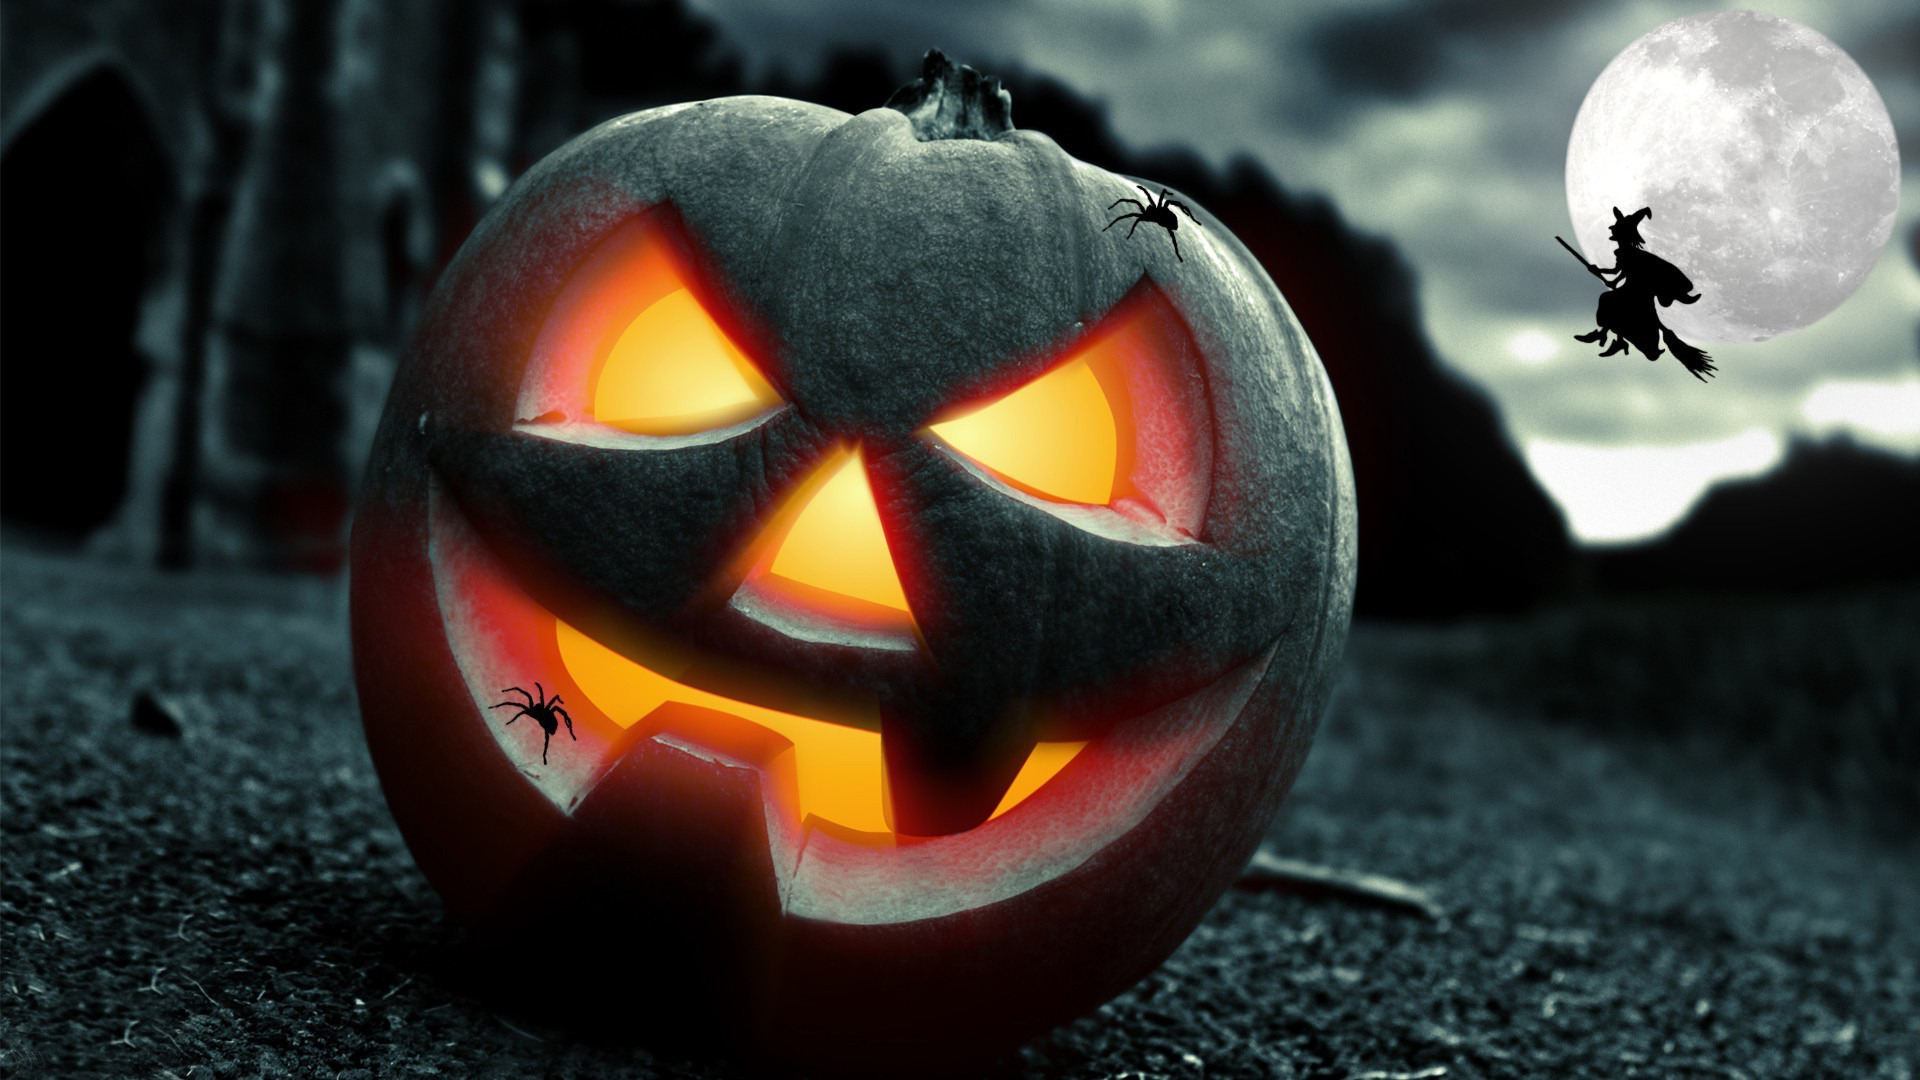 Awesome Jack o Lantern Wallpaper